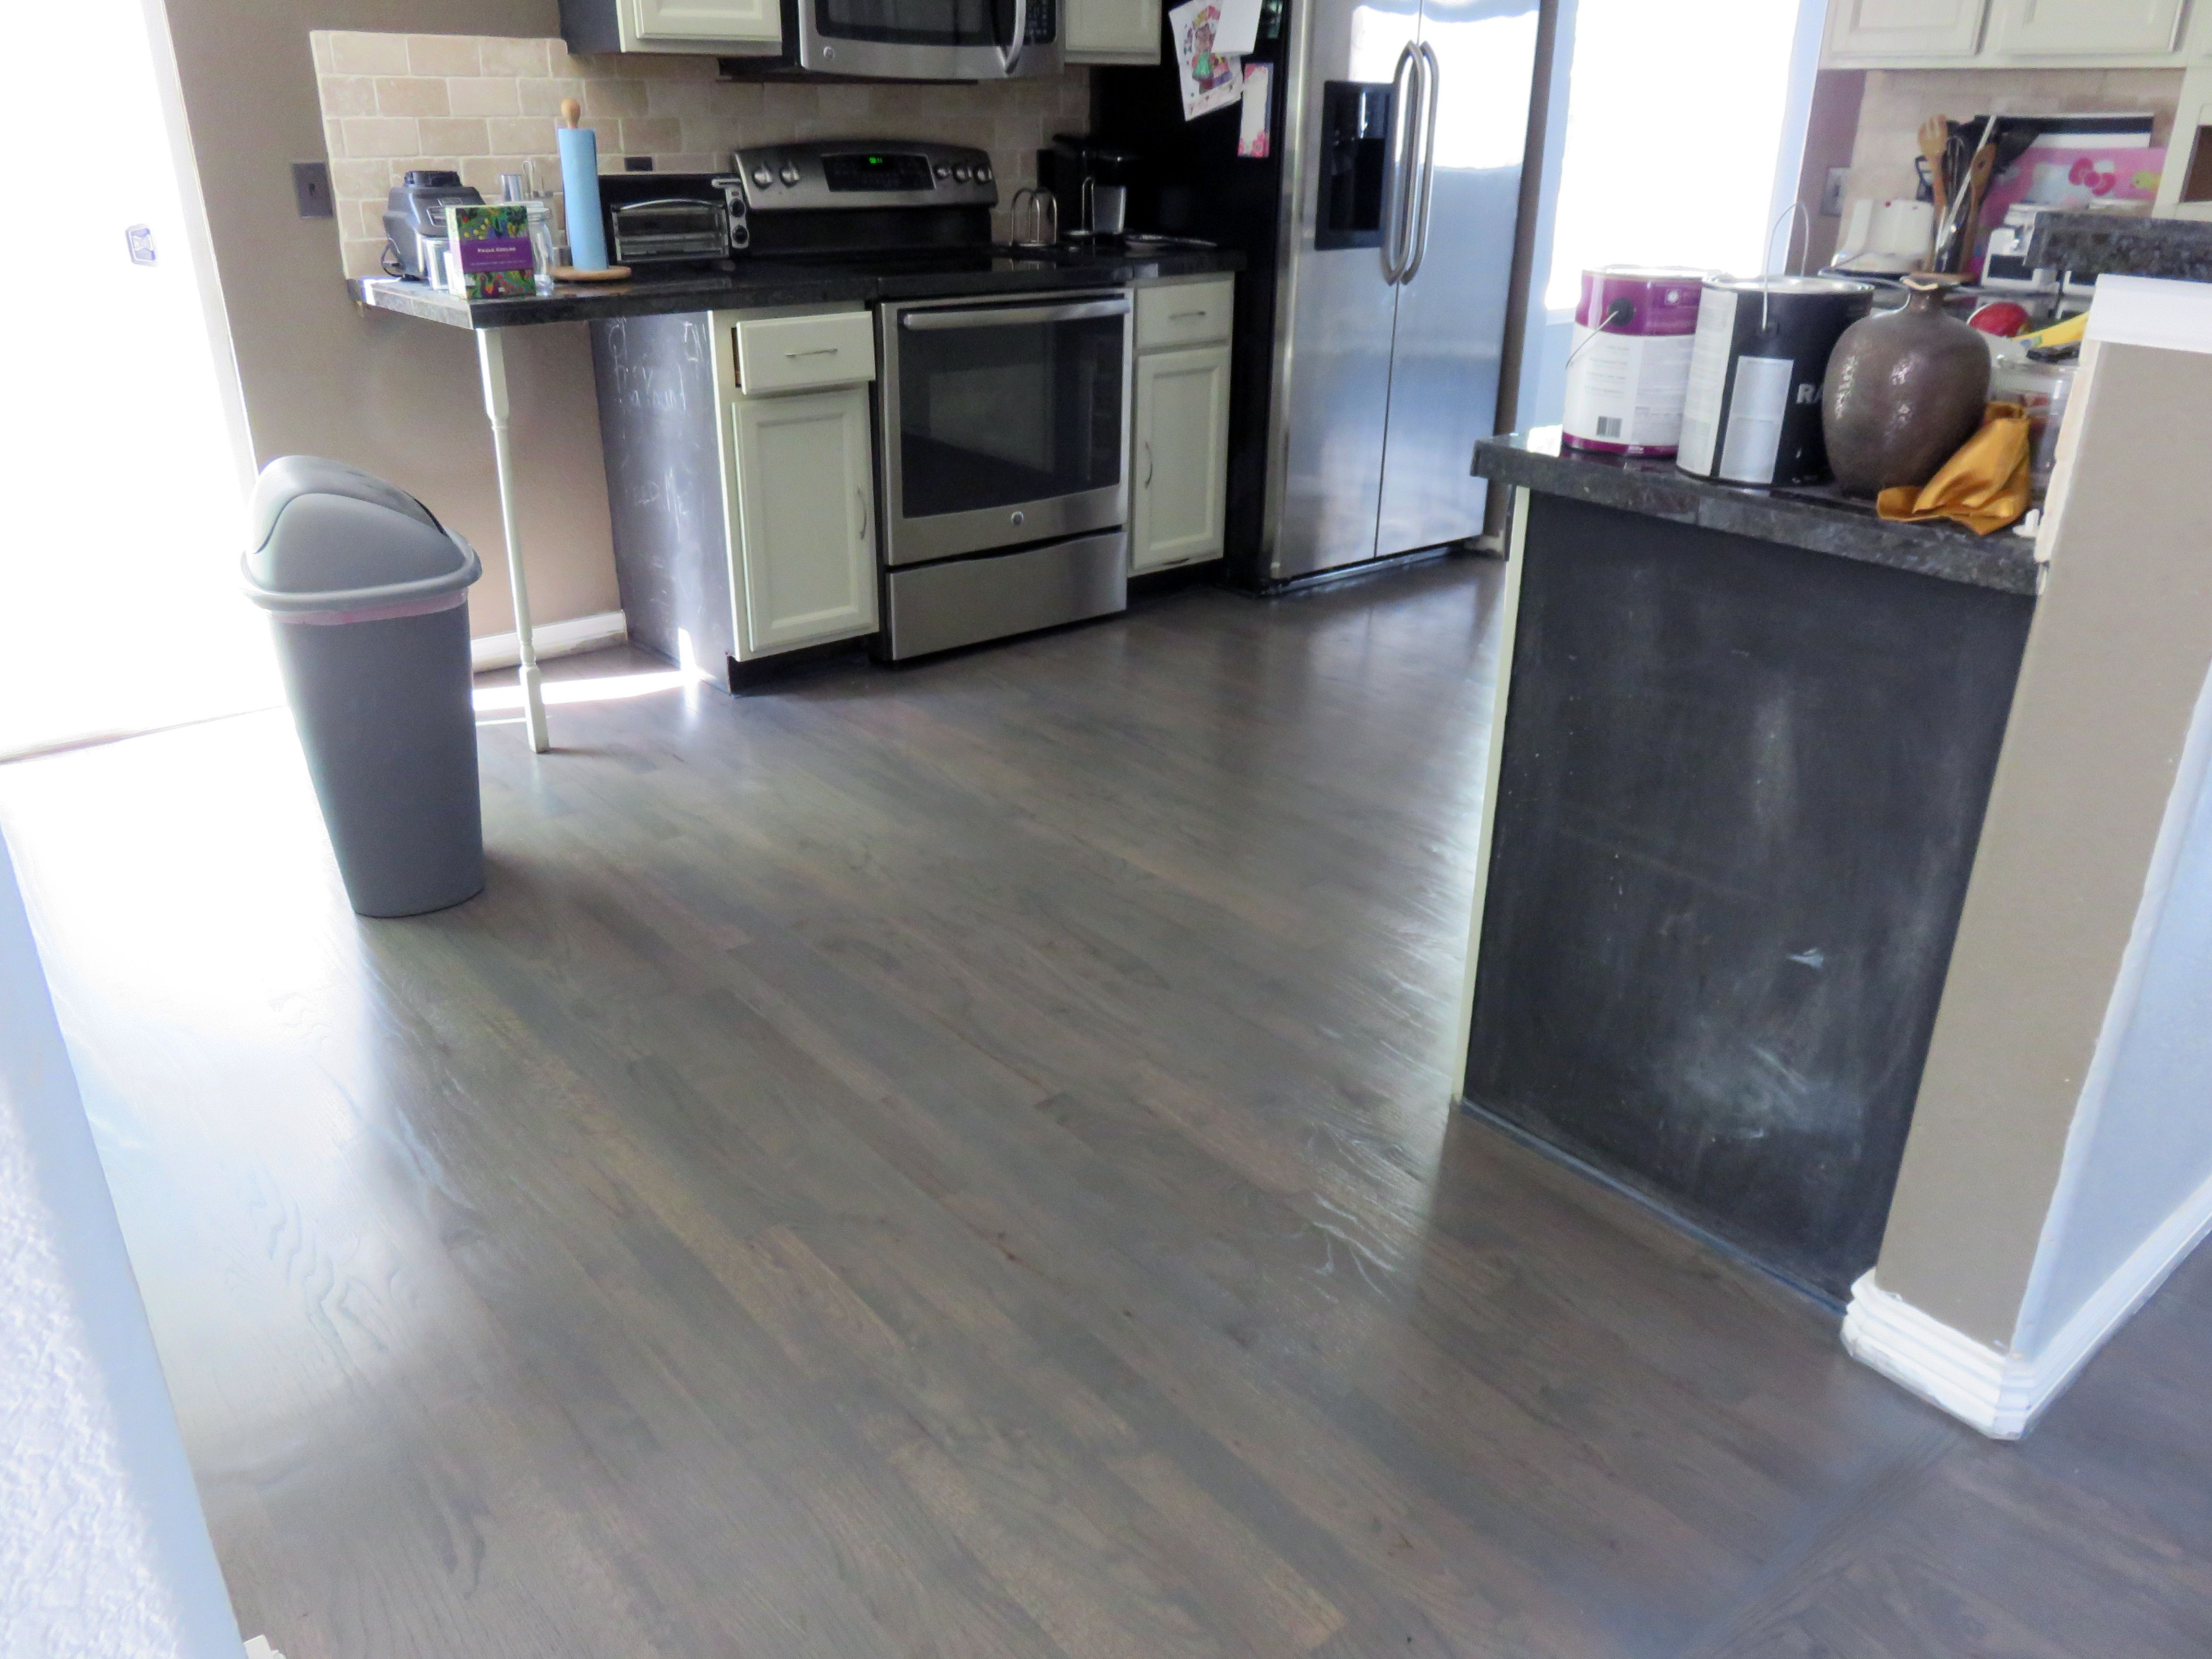 hardwood flooring company denver of the flooring artists flooringartists on pinterest regarding 9078034b1d9d8feca715942f734a98f8